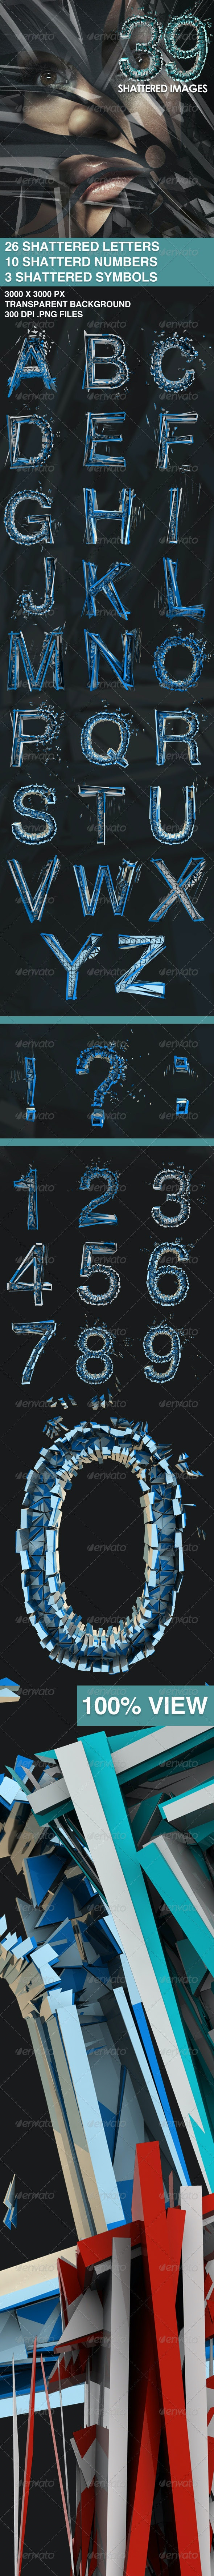 39 Isolated Shattered Letters - Text 3D Renders